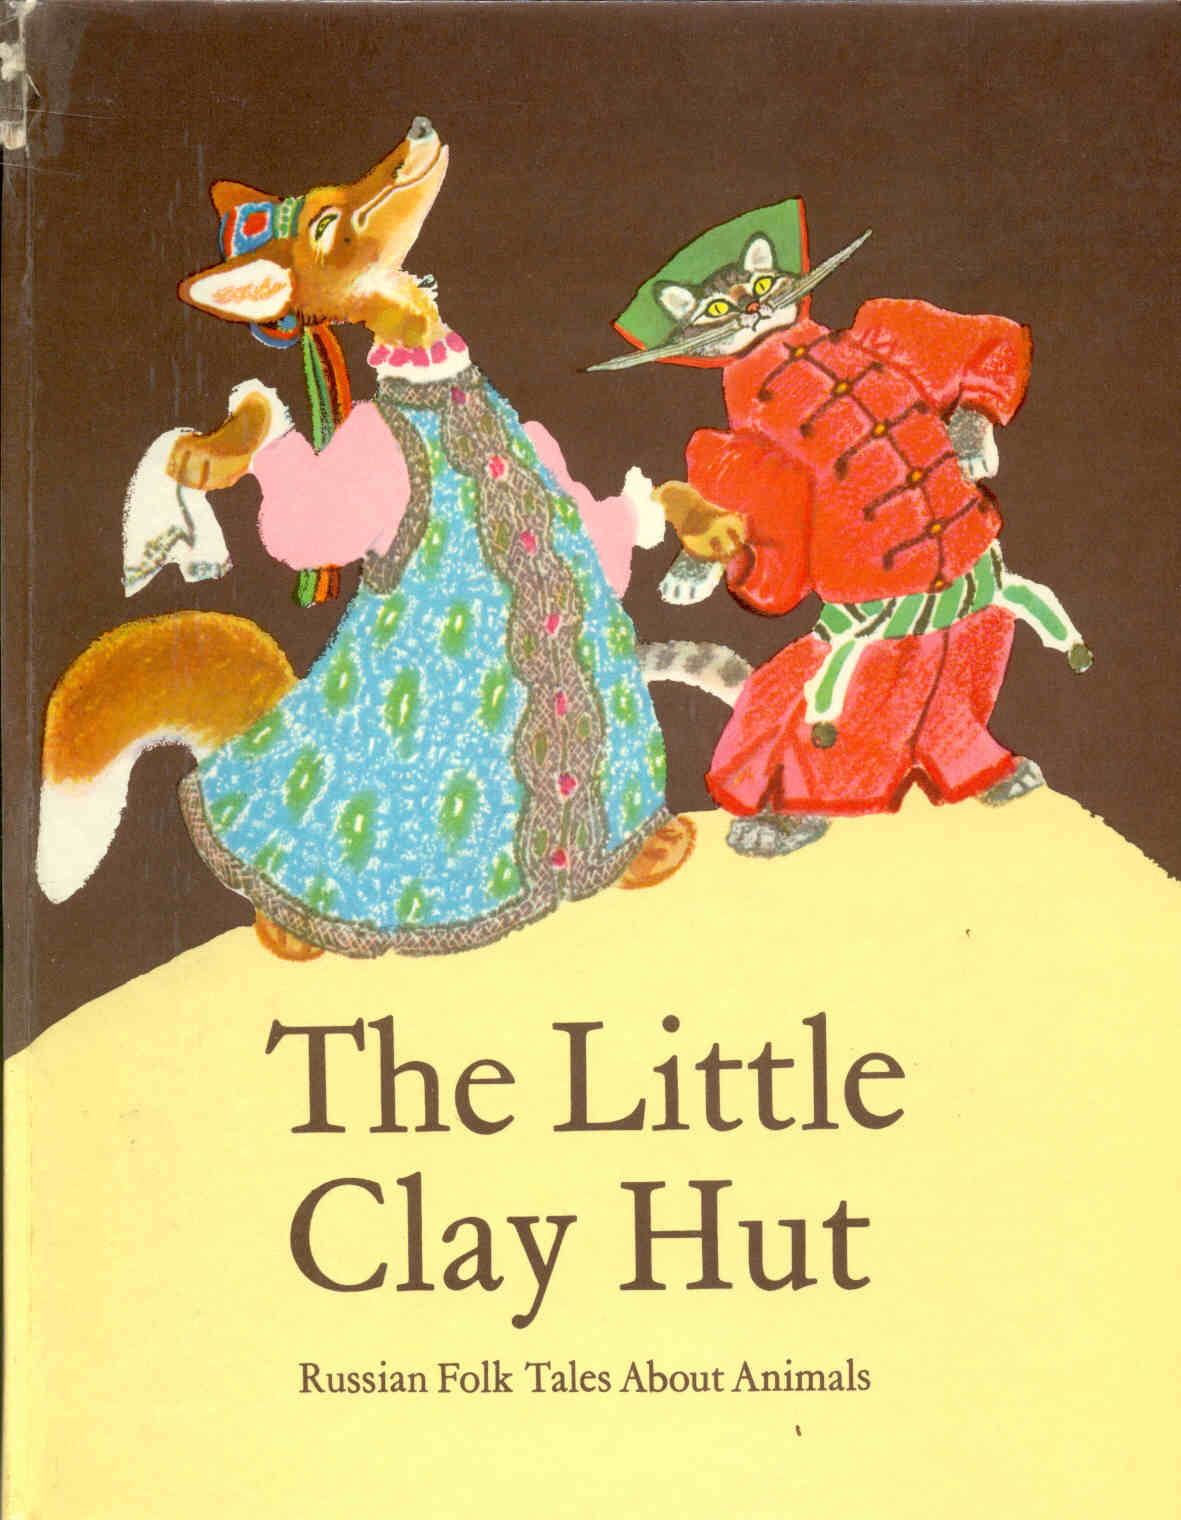 The Little Clay Hut: Russian Folk Tales About Animals. Illustrated by Evgeny Rachev.